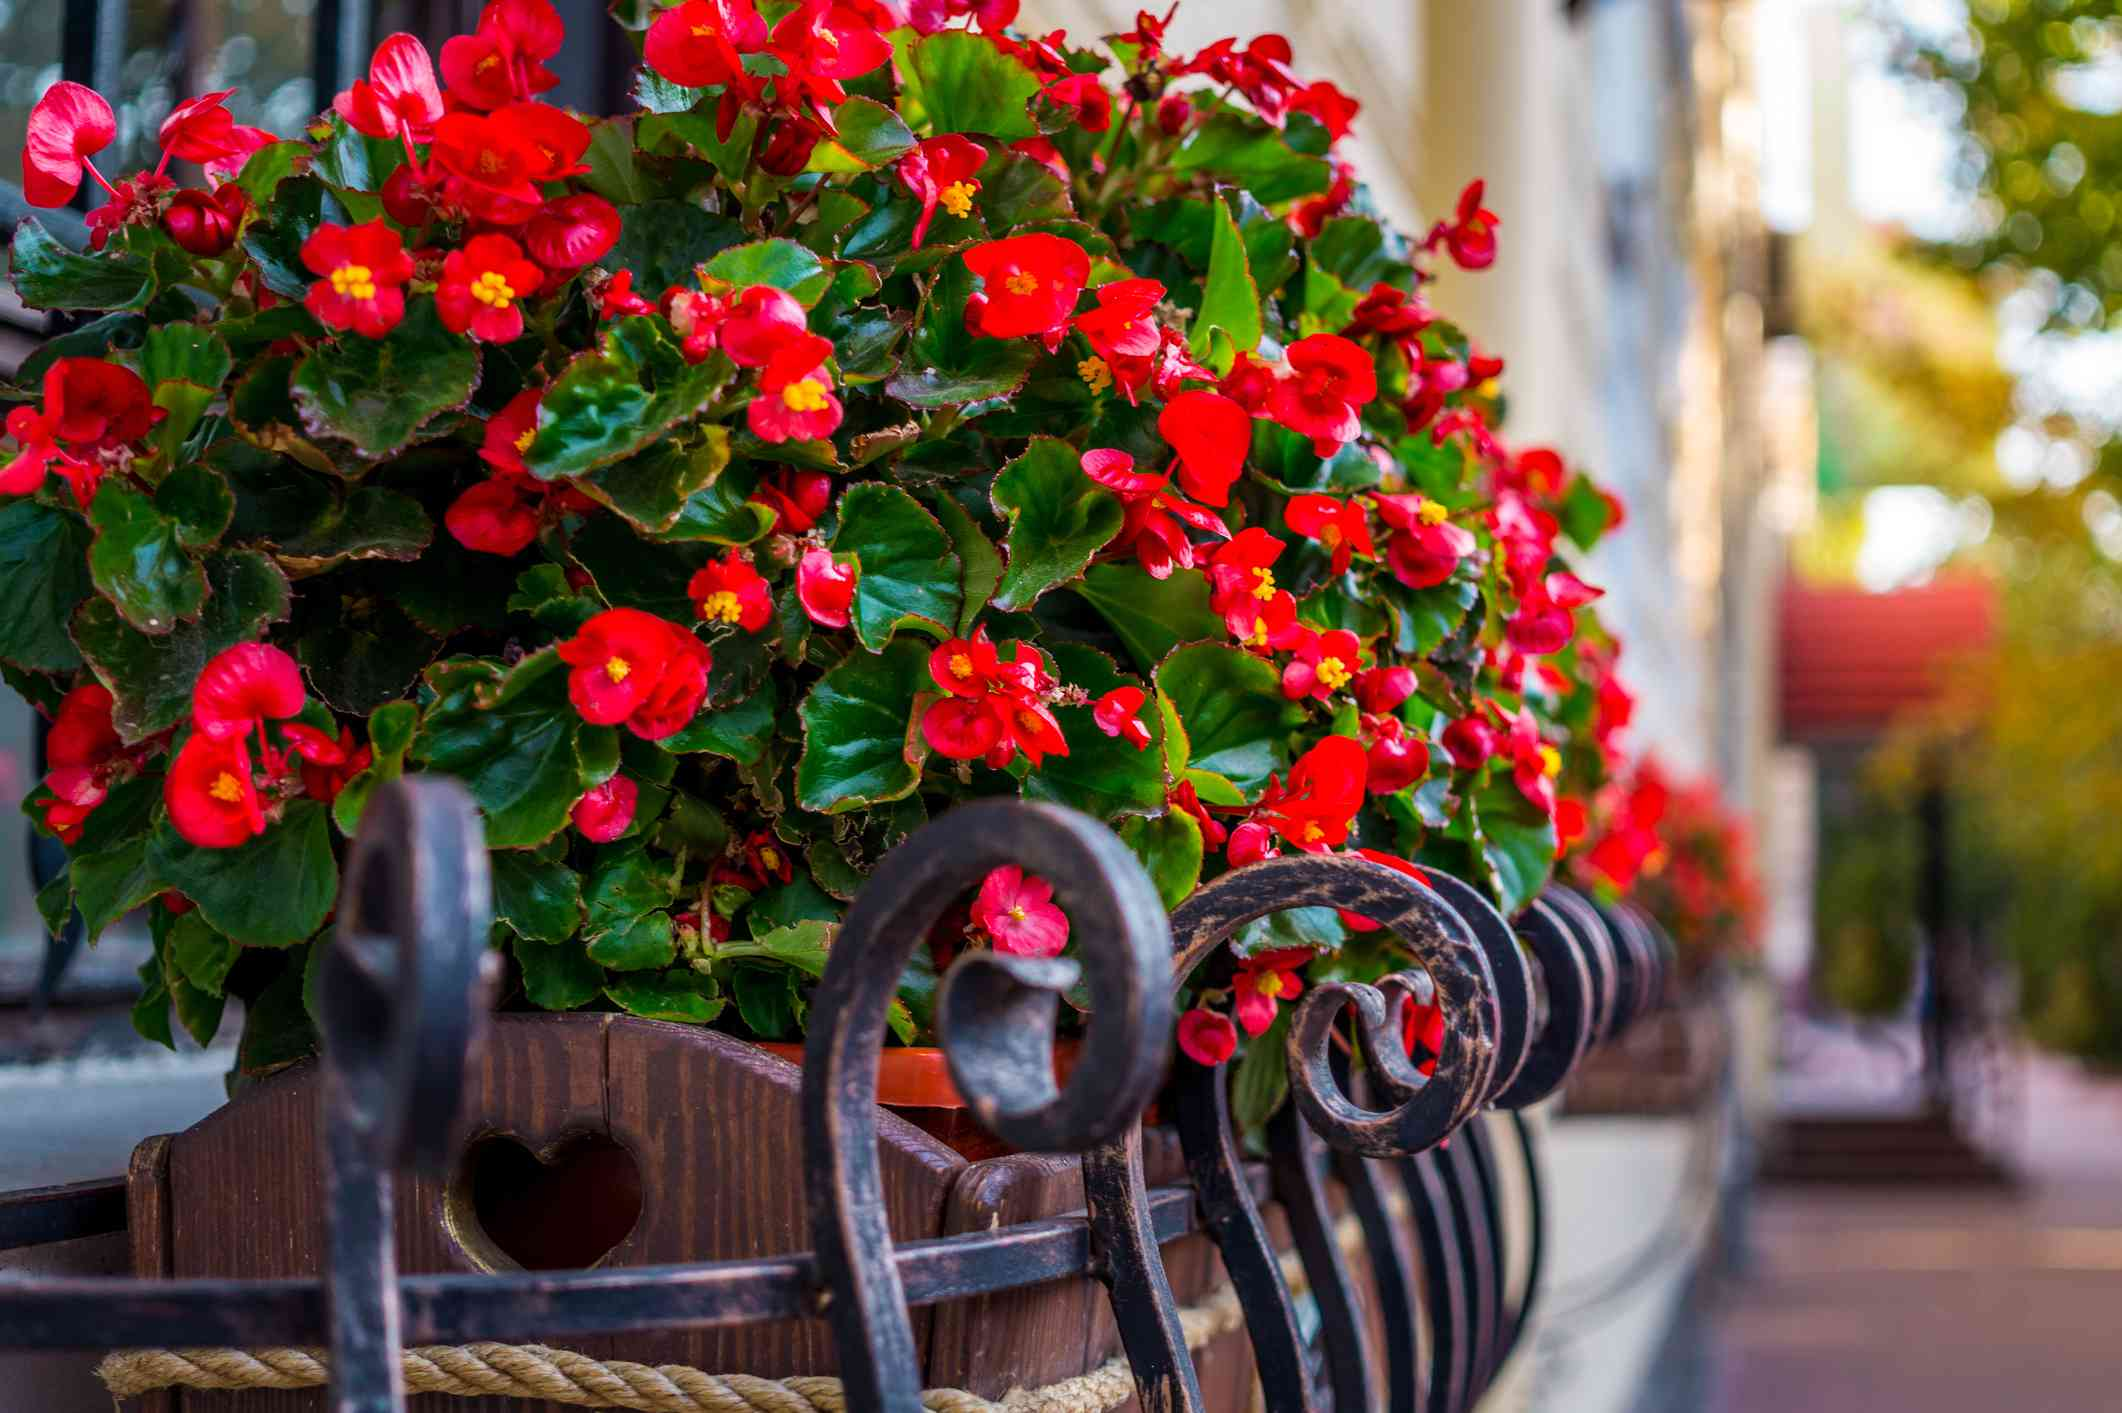 Red begonias blooming on a balcony